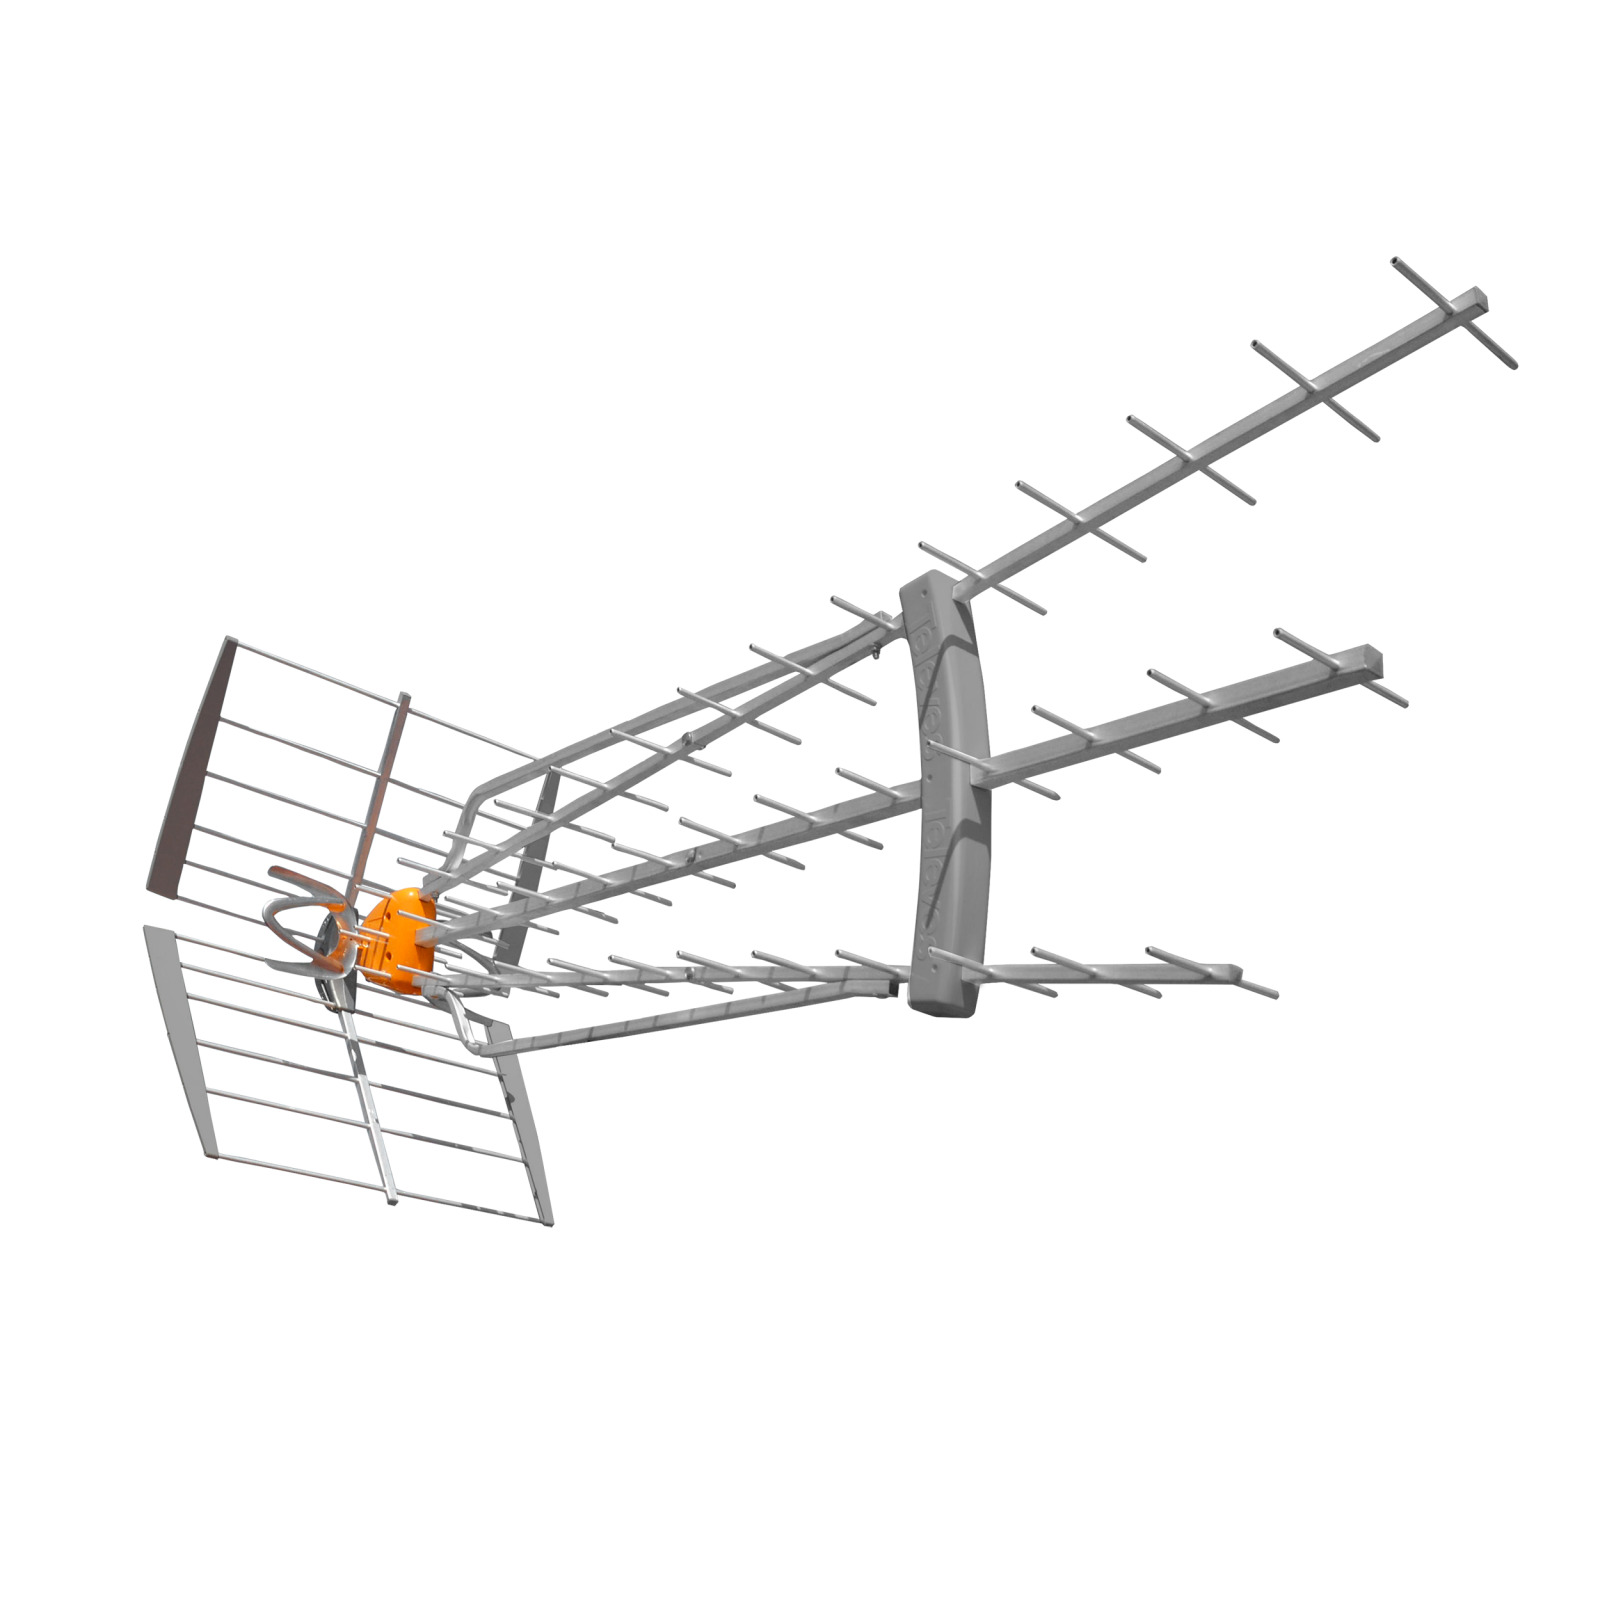 Televes DATBOSS LR Long-Range Amplified UHF TV Antenna LTE Filter (149783). Available Now for 99.99